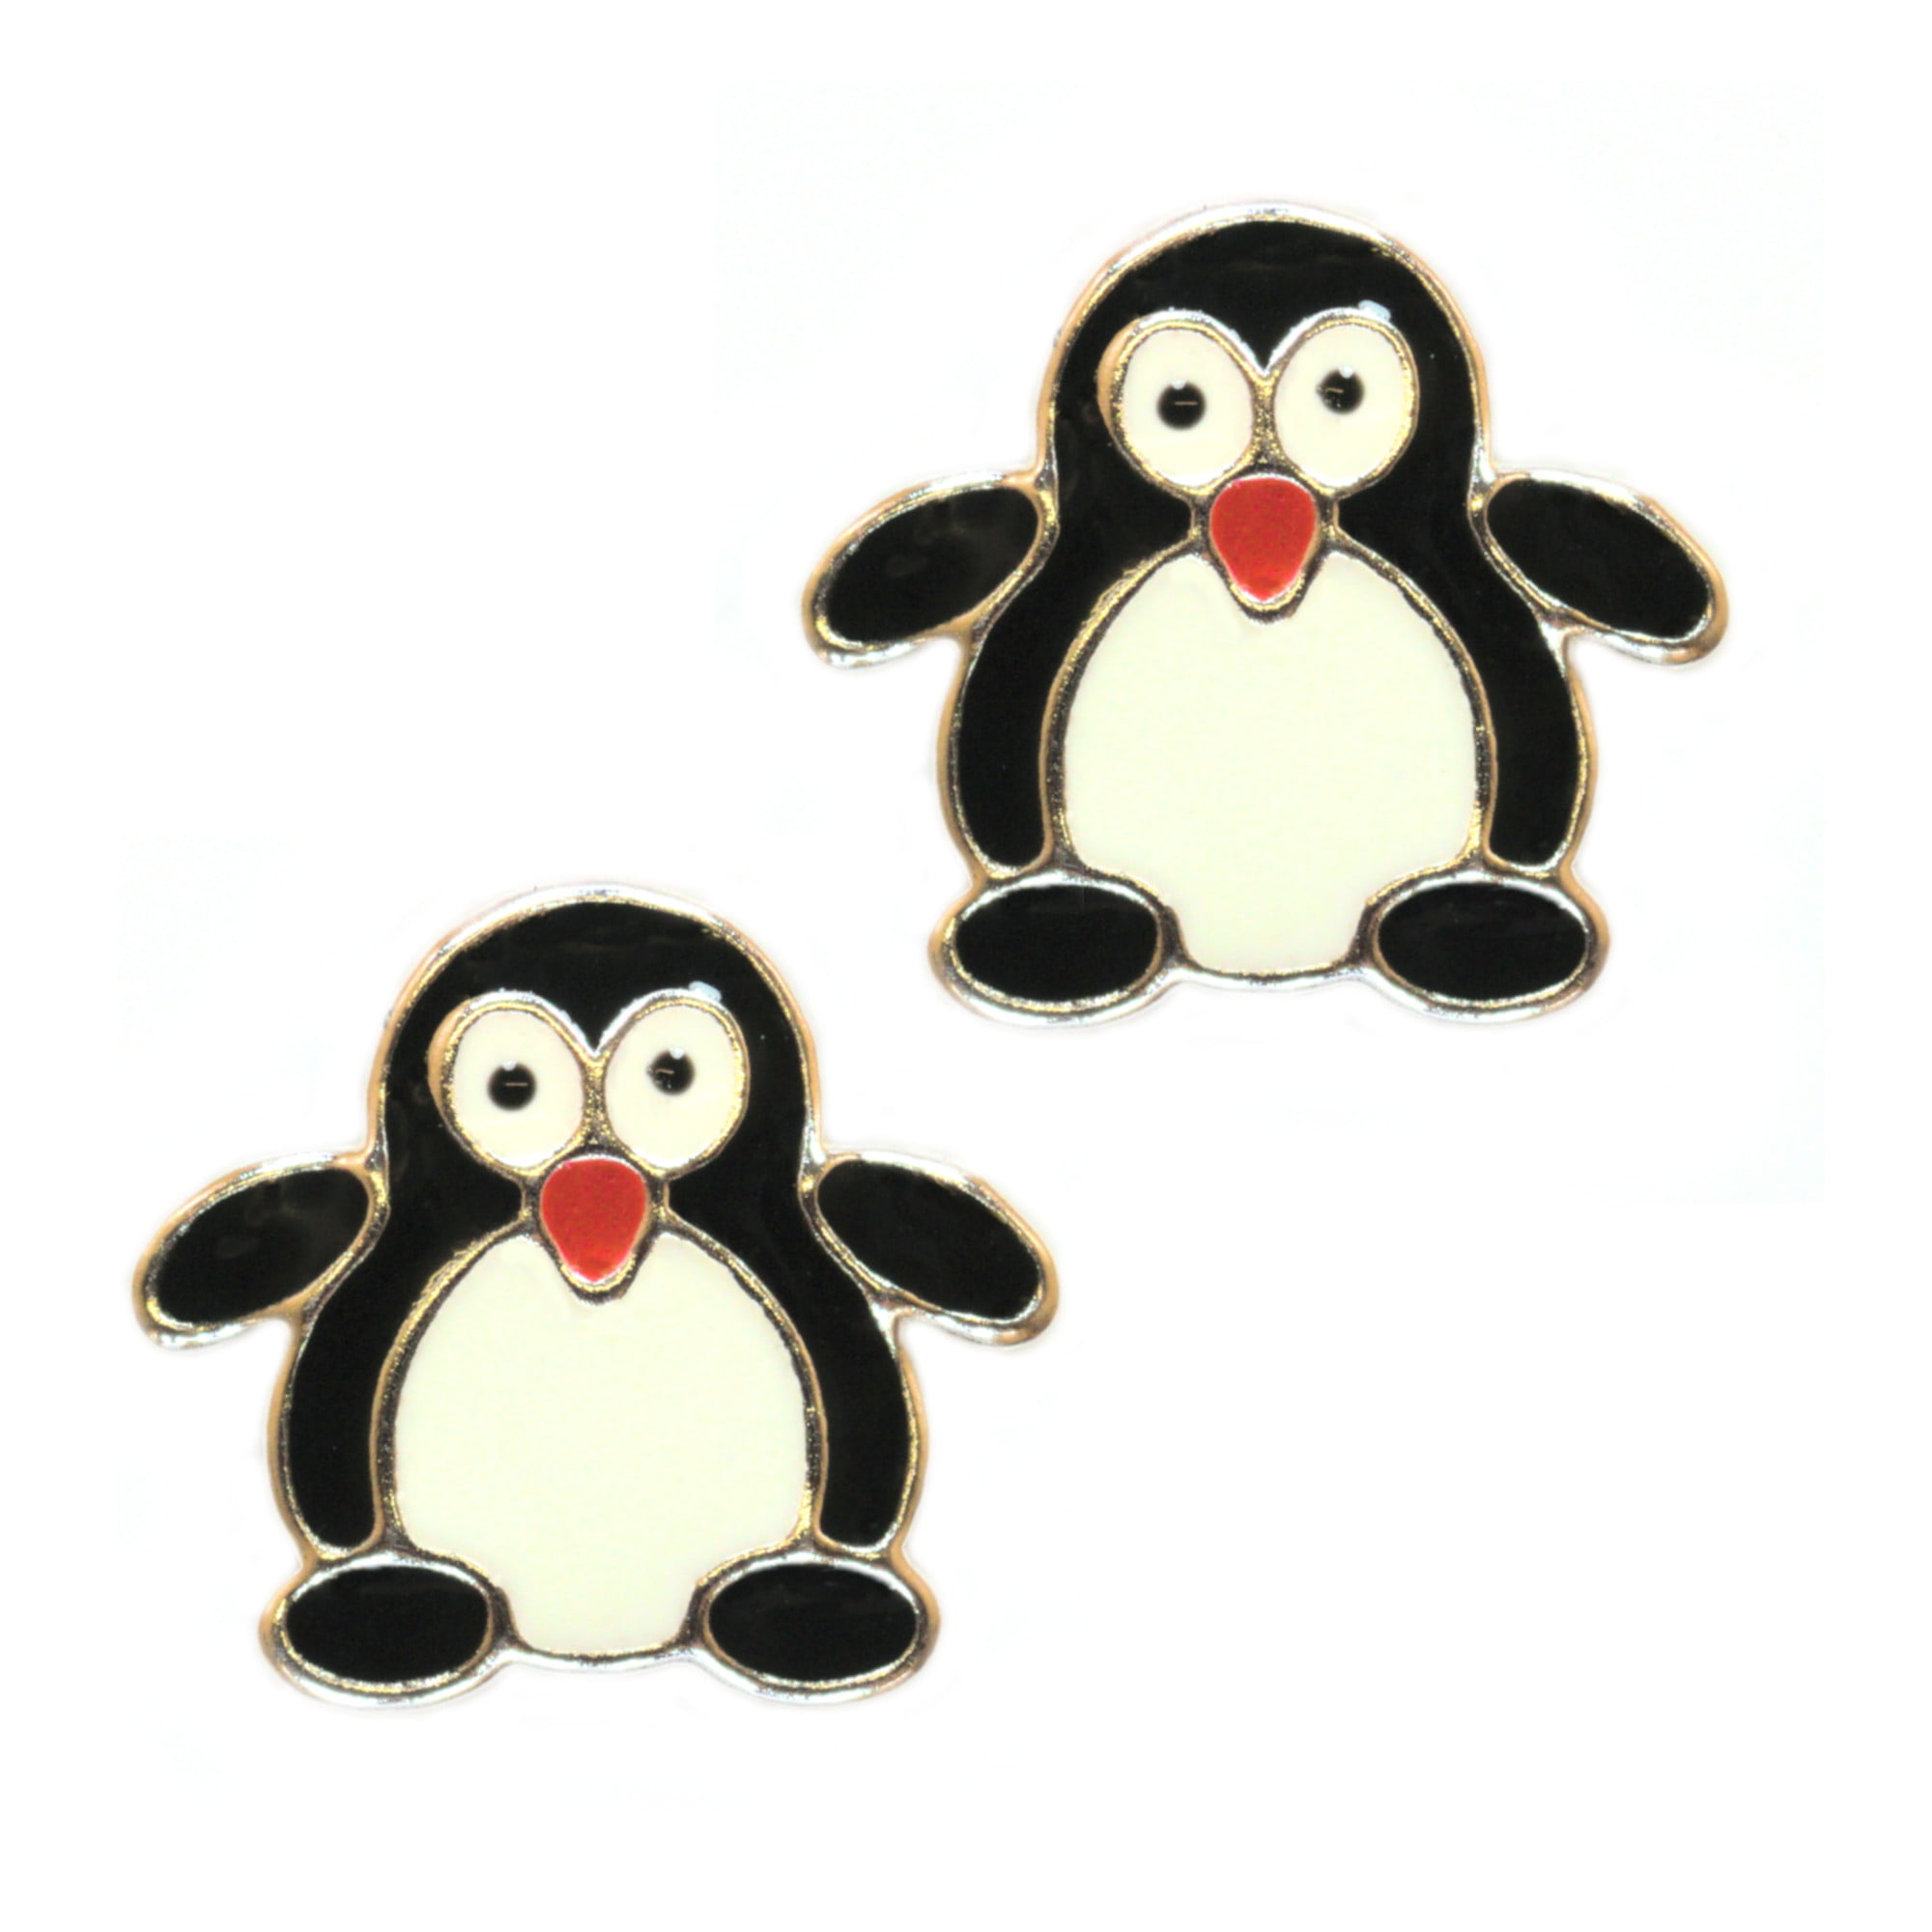 Penguin earrings in sterling silver